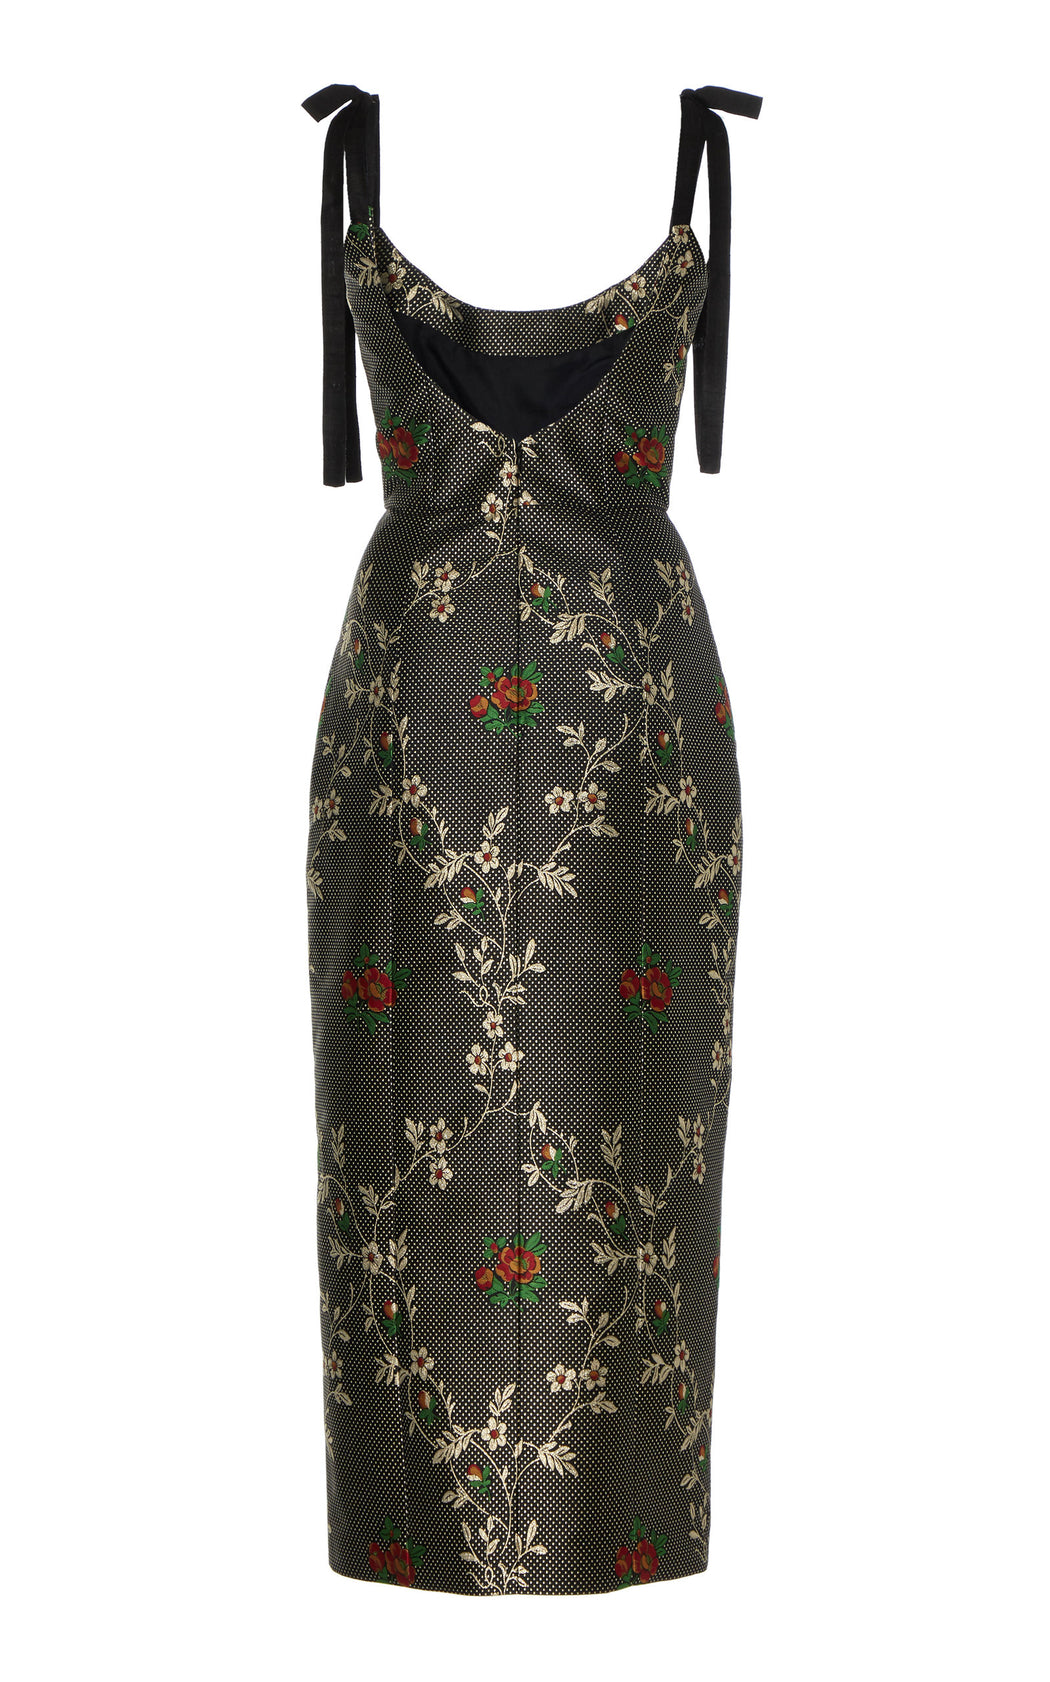 Monroe Black Floral Jacquard Midi Dress